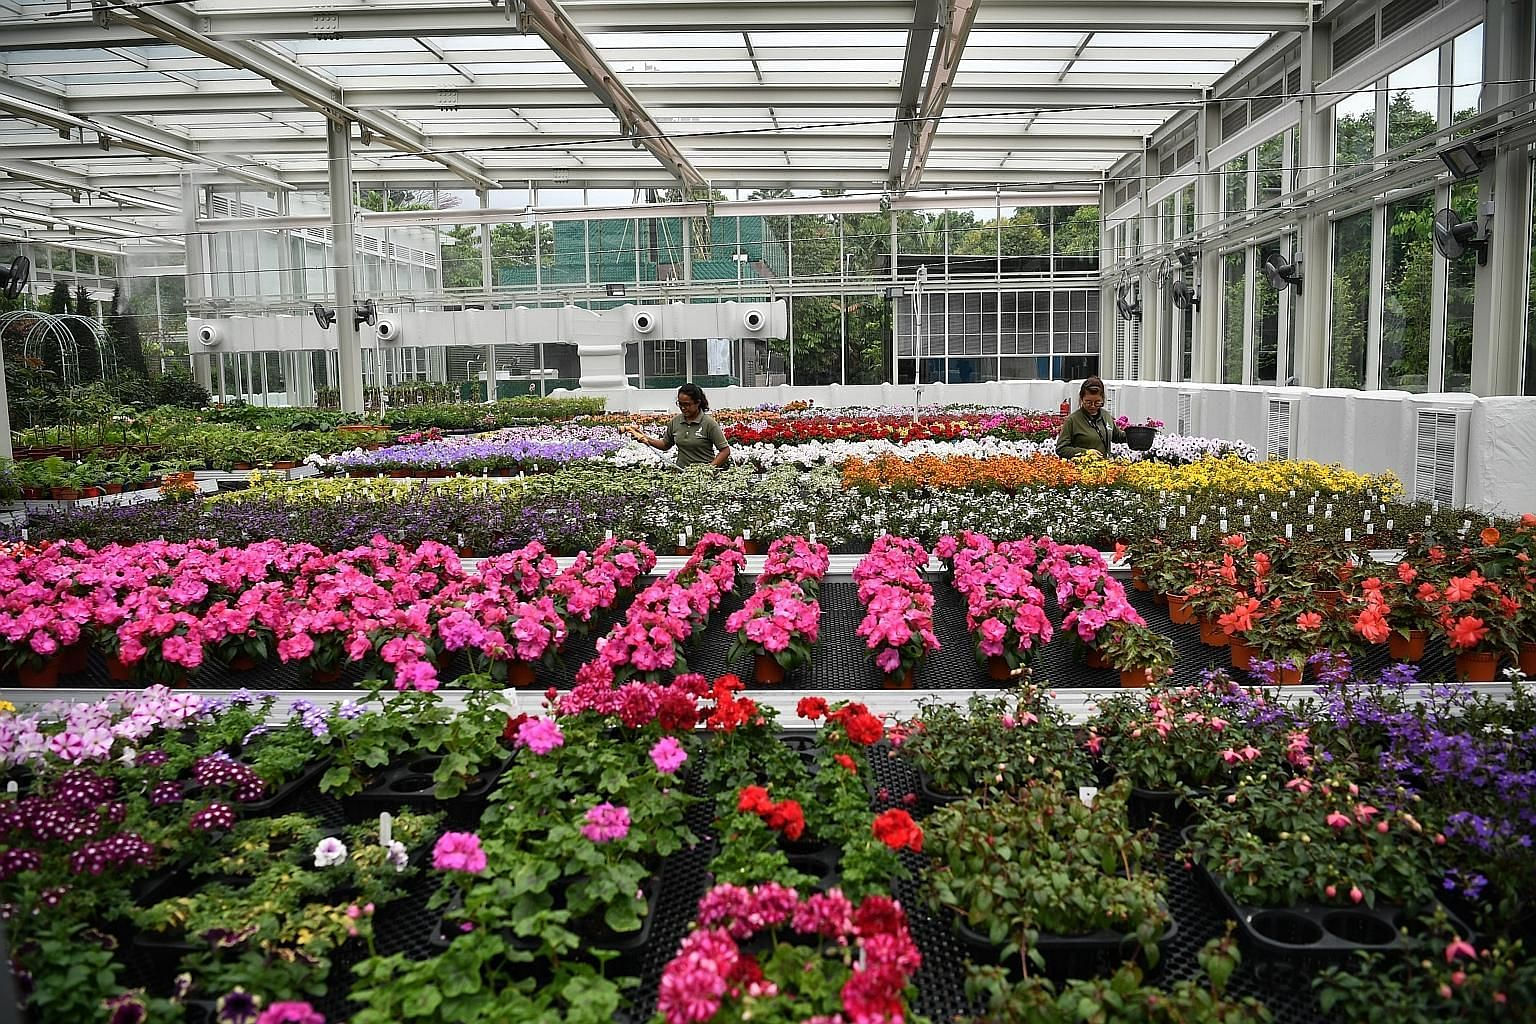 Gardens by the Bay recently opened its latest support biome, a cooled glasshouse in which plants are grown for displays. This support biome, which contains flowering plants from Europe like the Impatiens Roller Coaster Hot Pink and the Calibrachoa Al